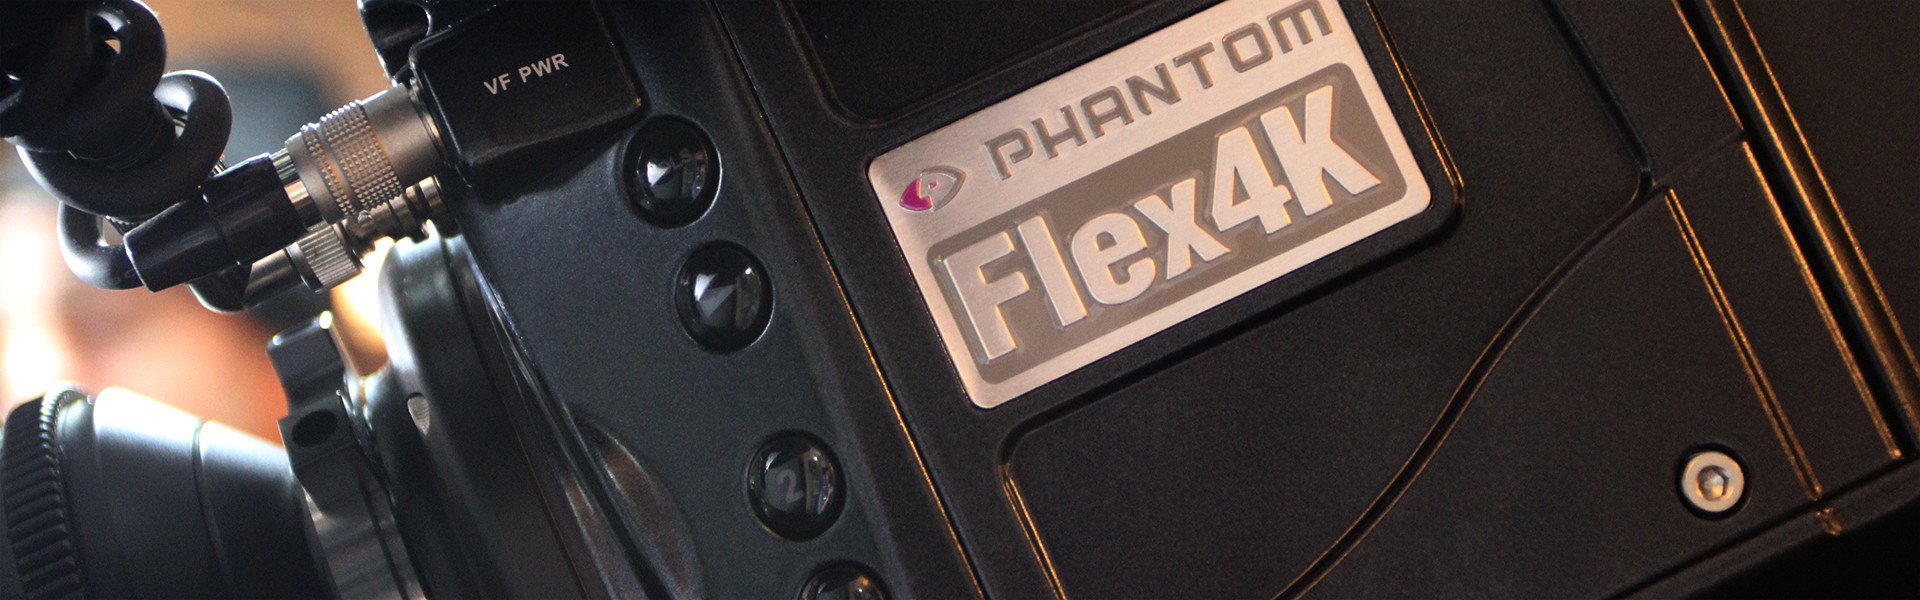 Header image for article Prepping the Phantom Flex4K: Our Service Value